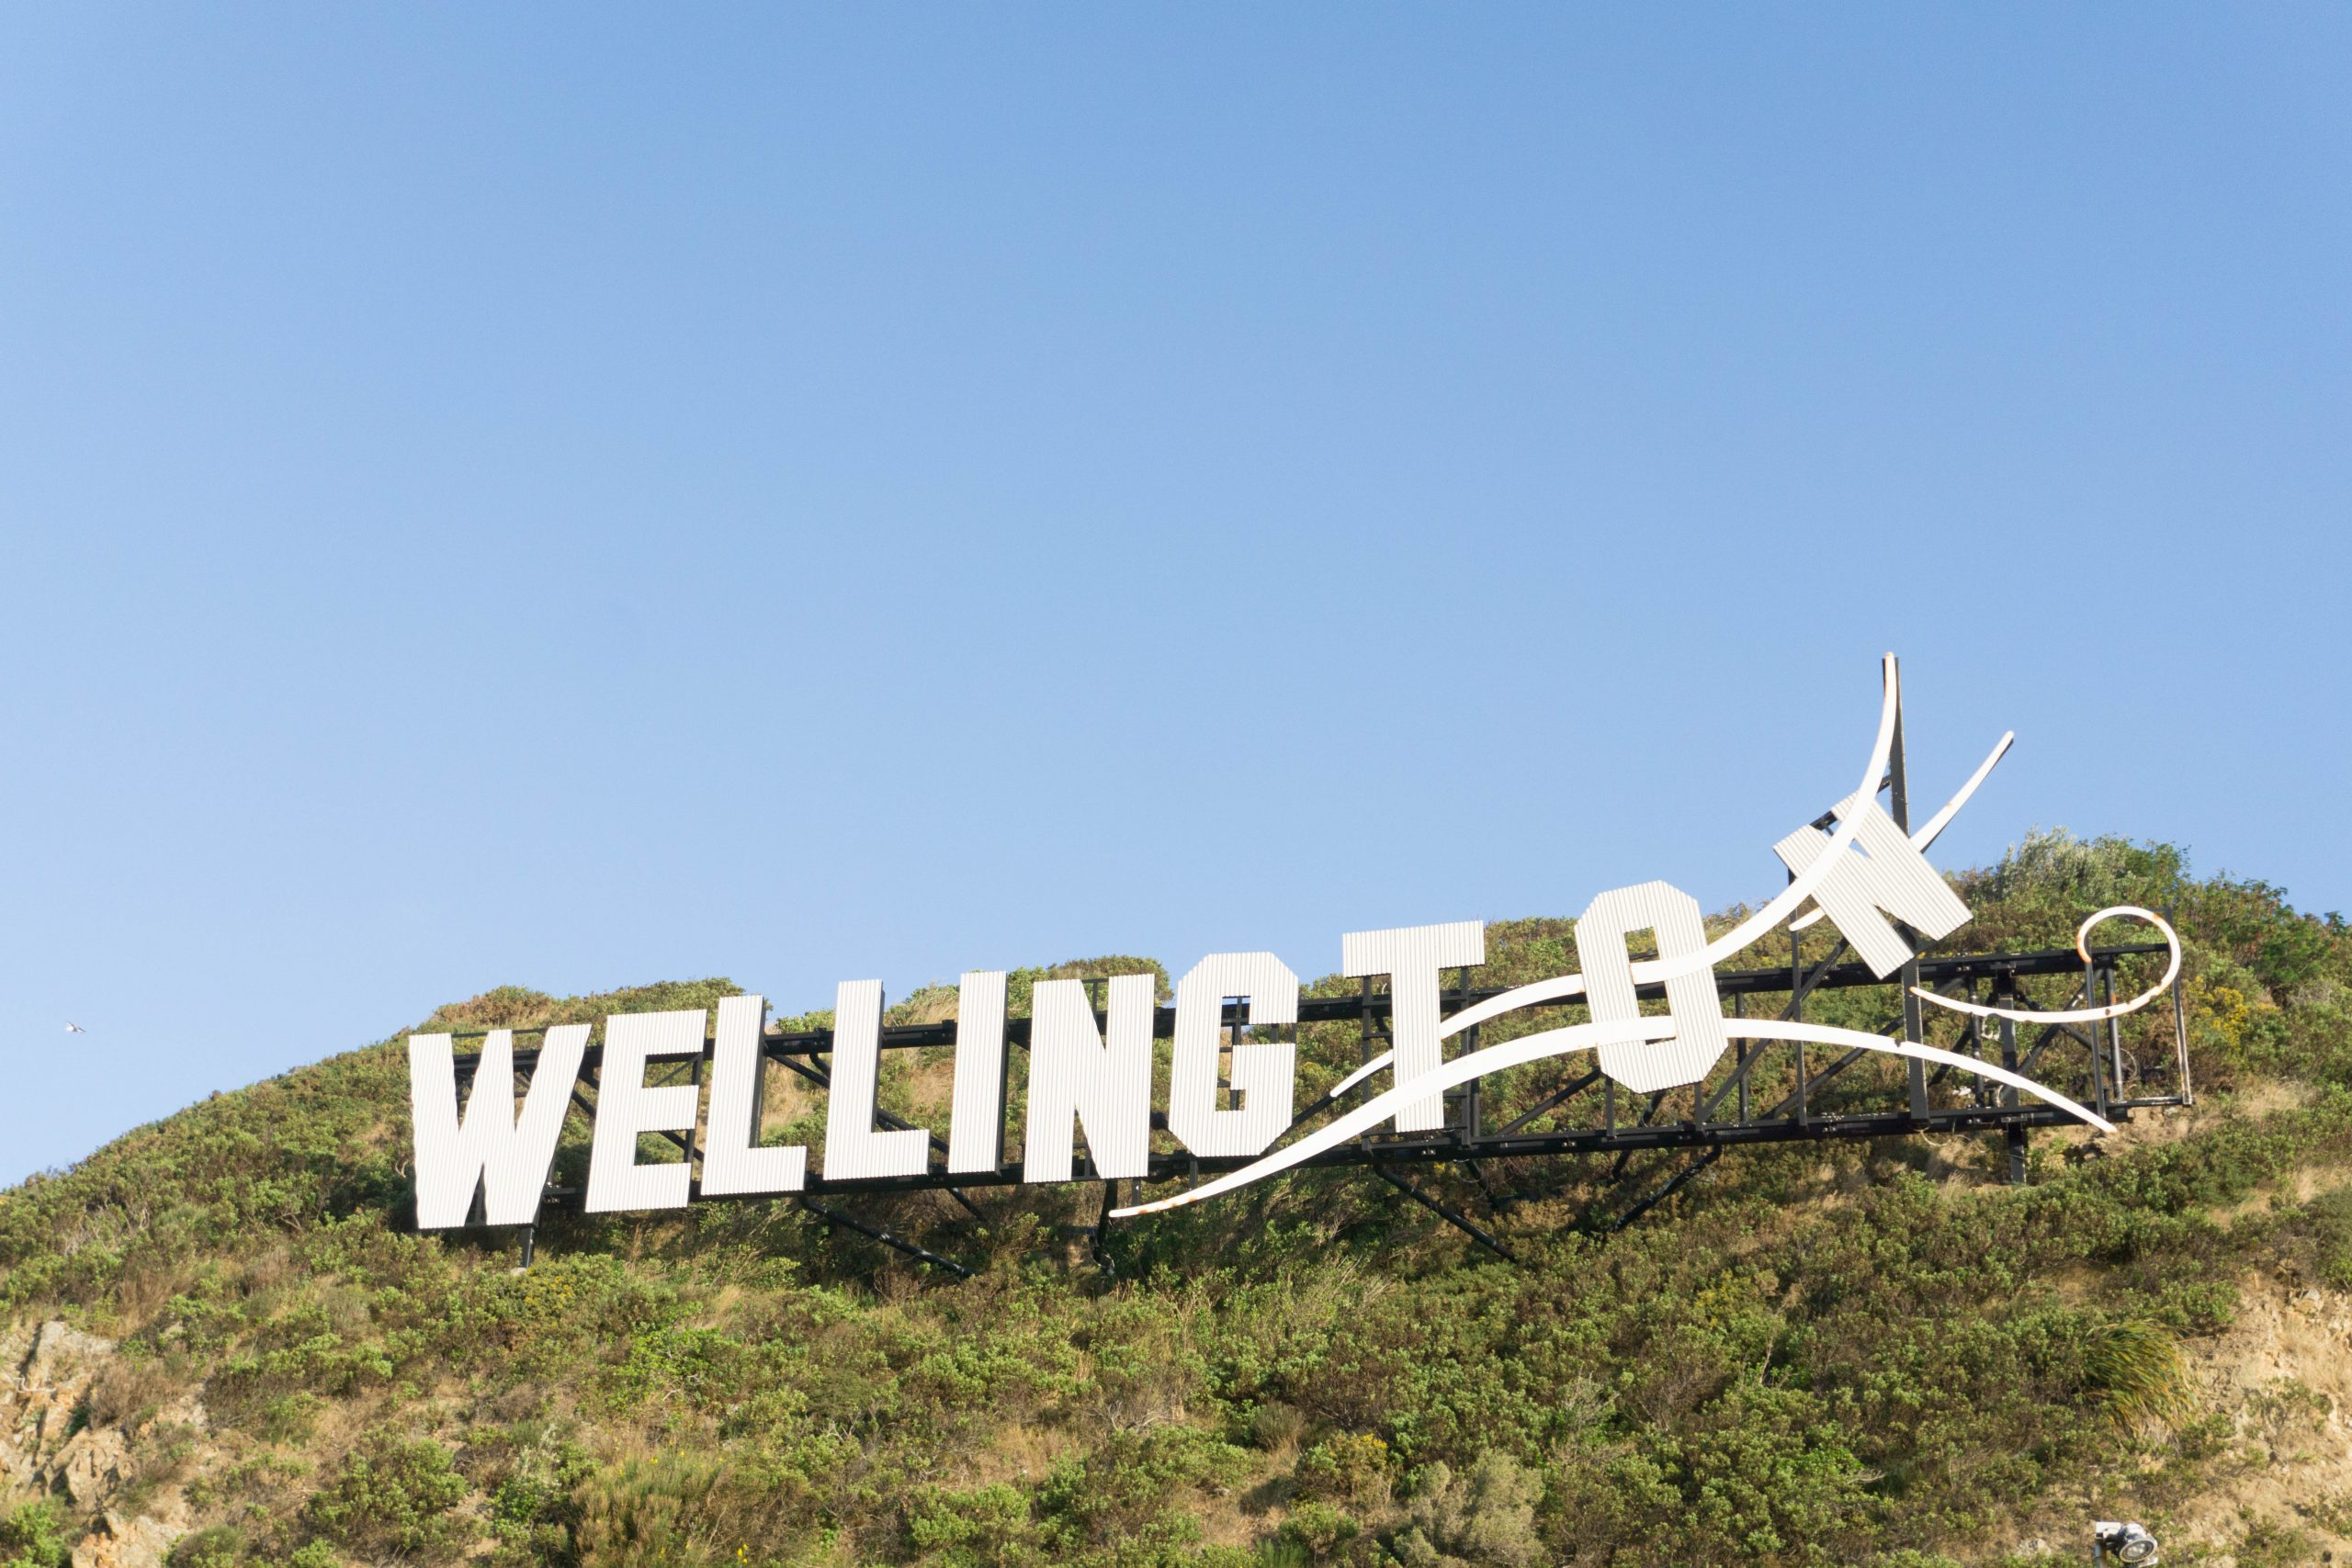 Blowing Away Wellington Sign